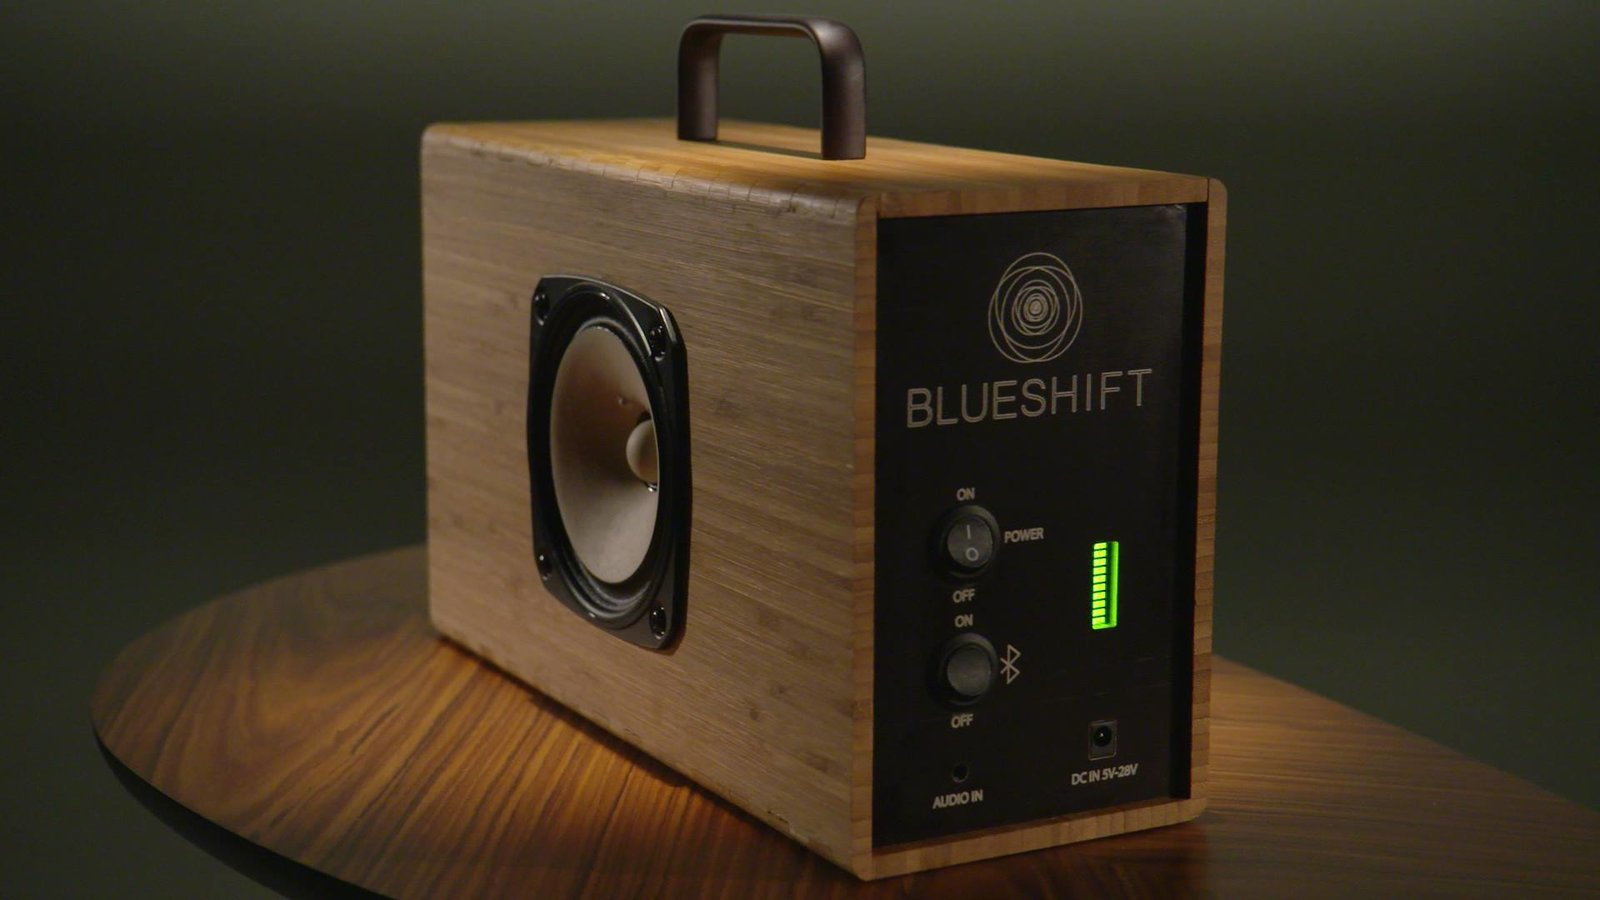 "Blueshift portable speaker. ""Blueshift speakers charge in five minutes. Simple, beautiful devices - built to last in Portland, Oregon."" https://www.crowdsupply.com/blueshift/hydrogen-next-generation-supercapacitor-powered-portable-speaker  https://www.facebook.com/BlueshiftPDX  Sound Style"